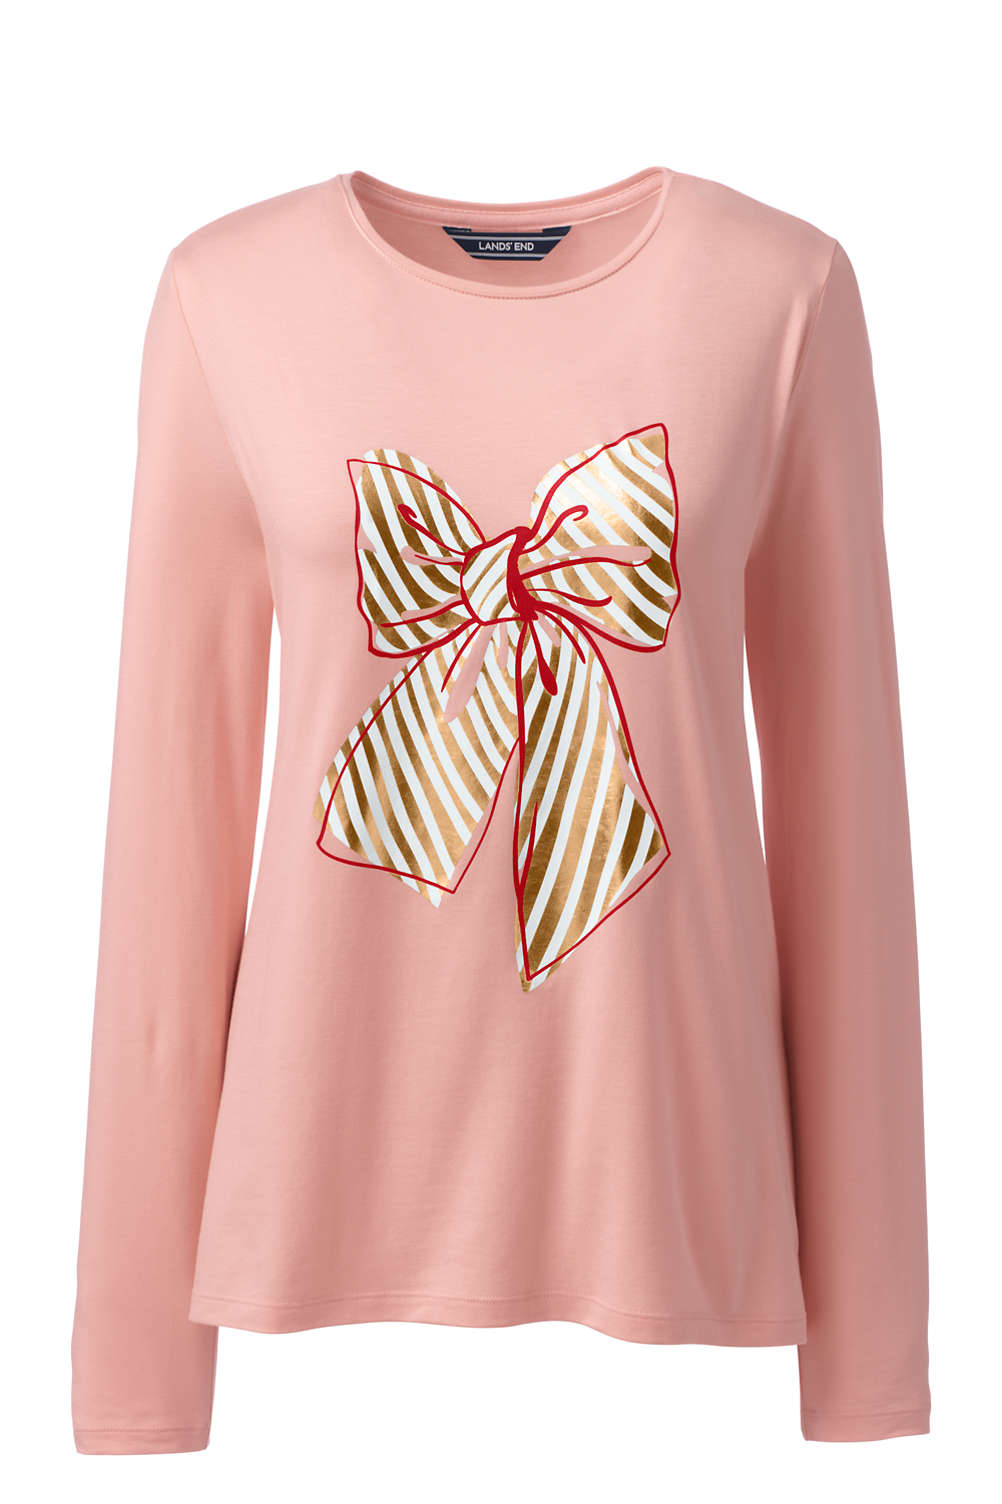 efffbffa3fe9 Women's Long Sleeve Christmas T-Shirt Graphic from Lands' End